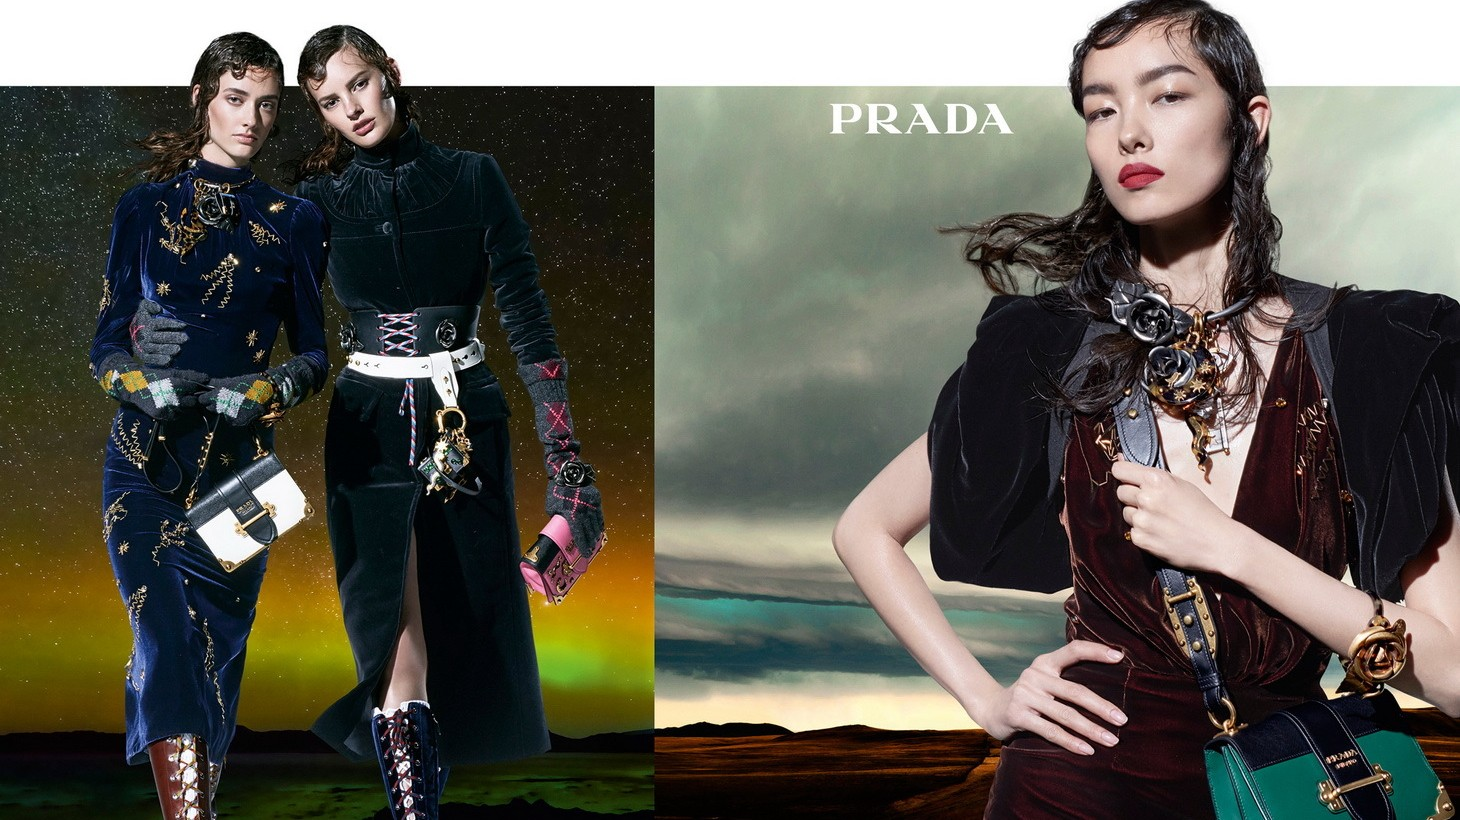 ​prada unveil huge supermodel line up for autumn/winter 16 campaign